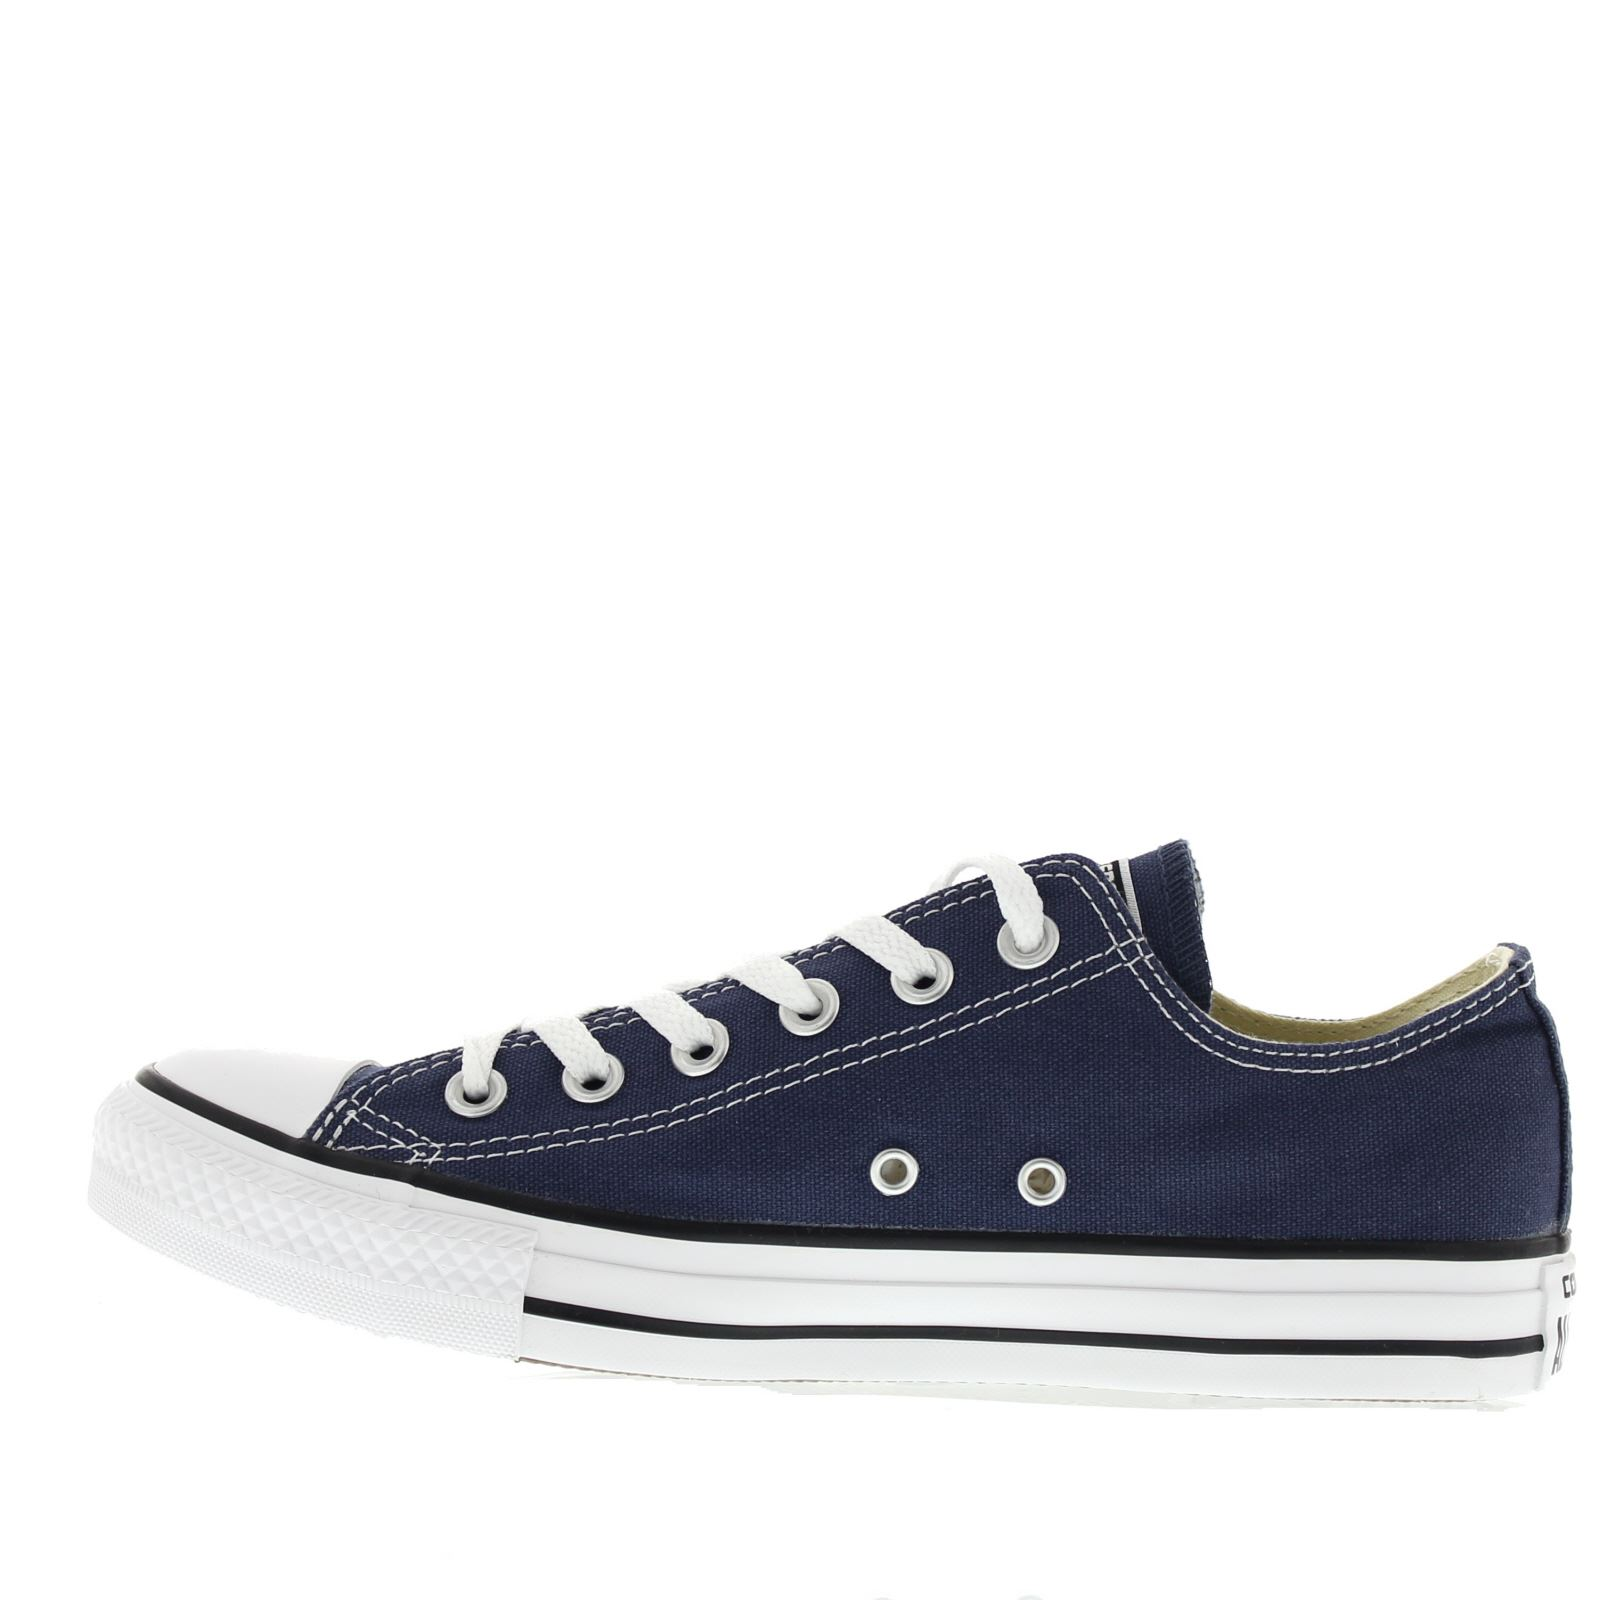 Converse-All-Star-Ox-Unisex-Mens-Womens-Ladies-Trainers thumbnail 12